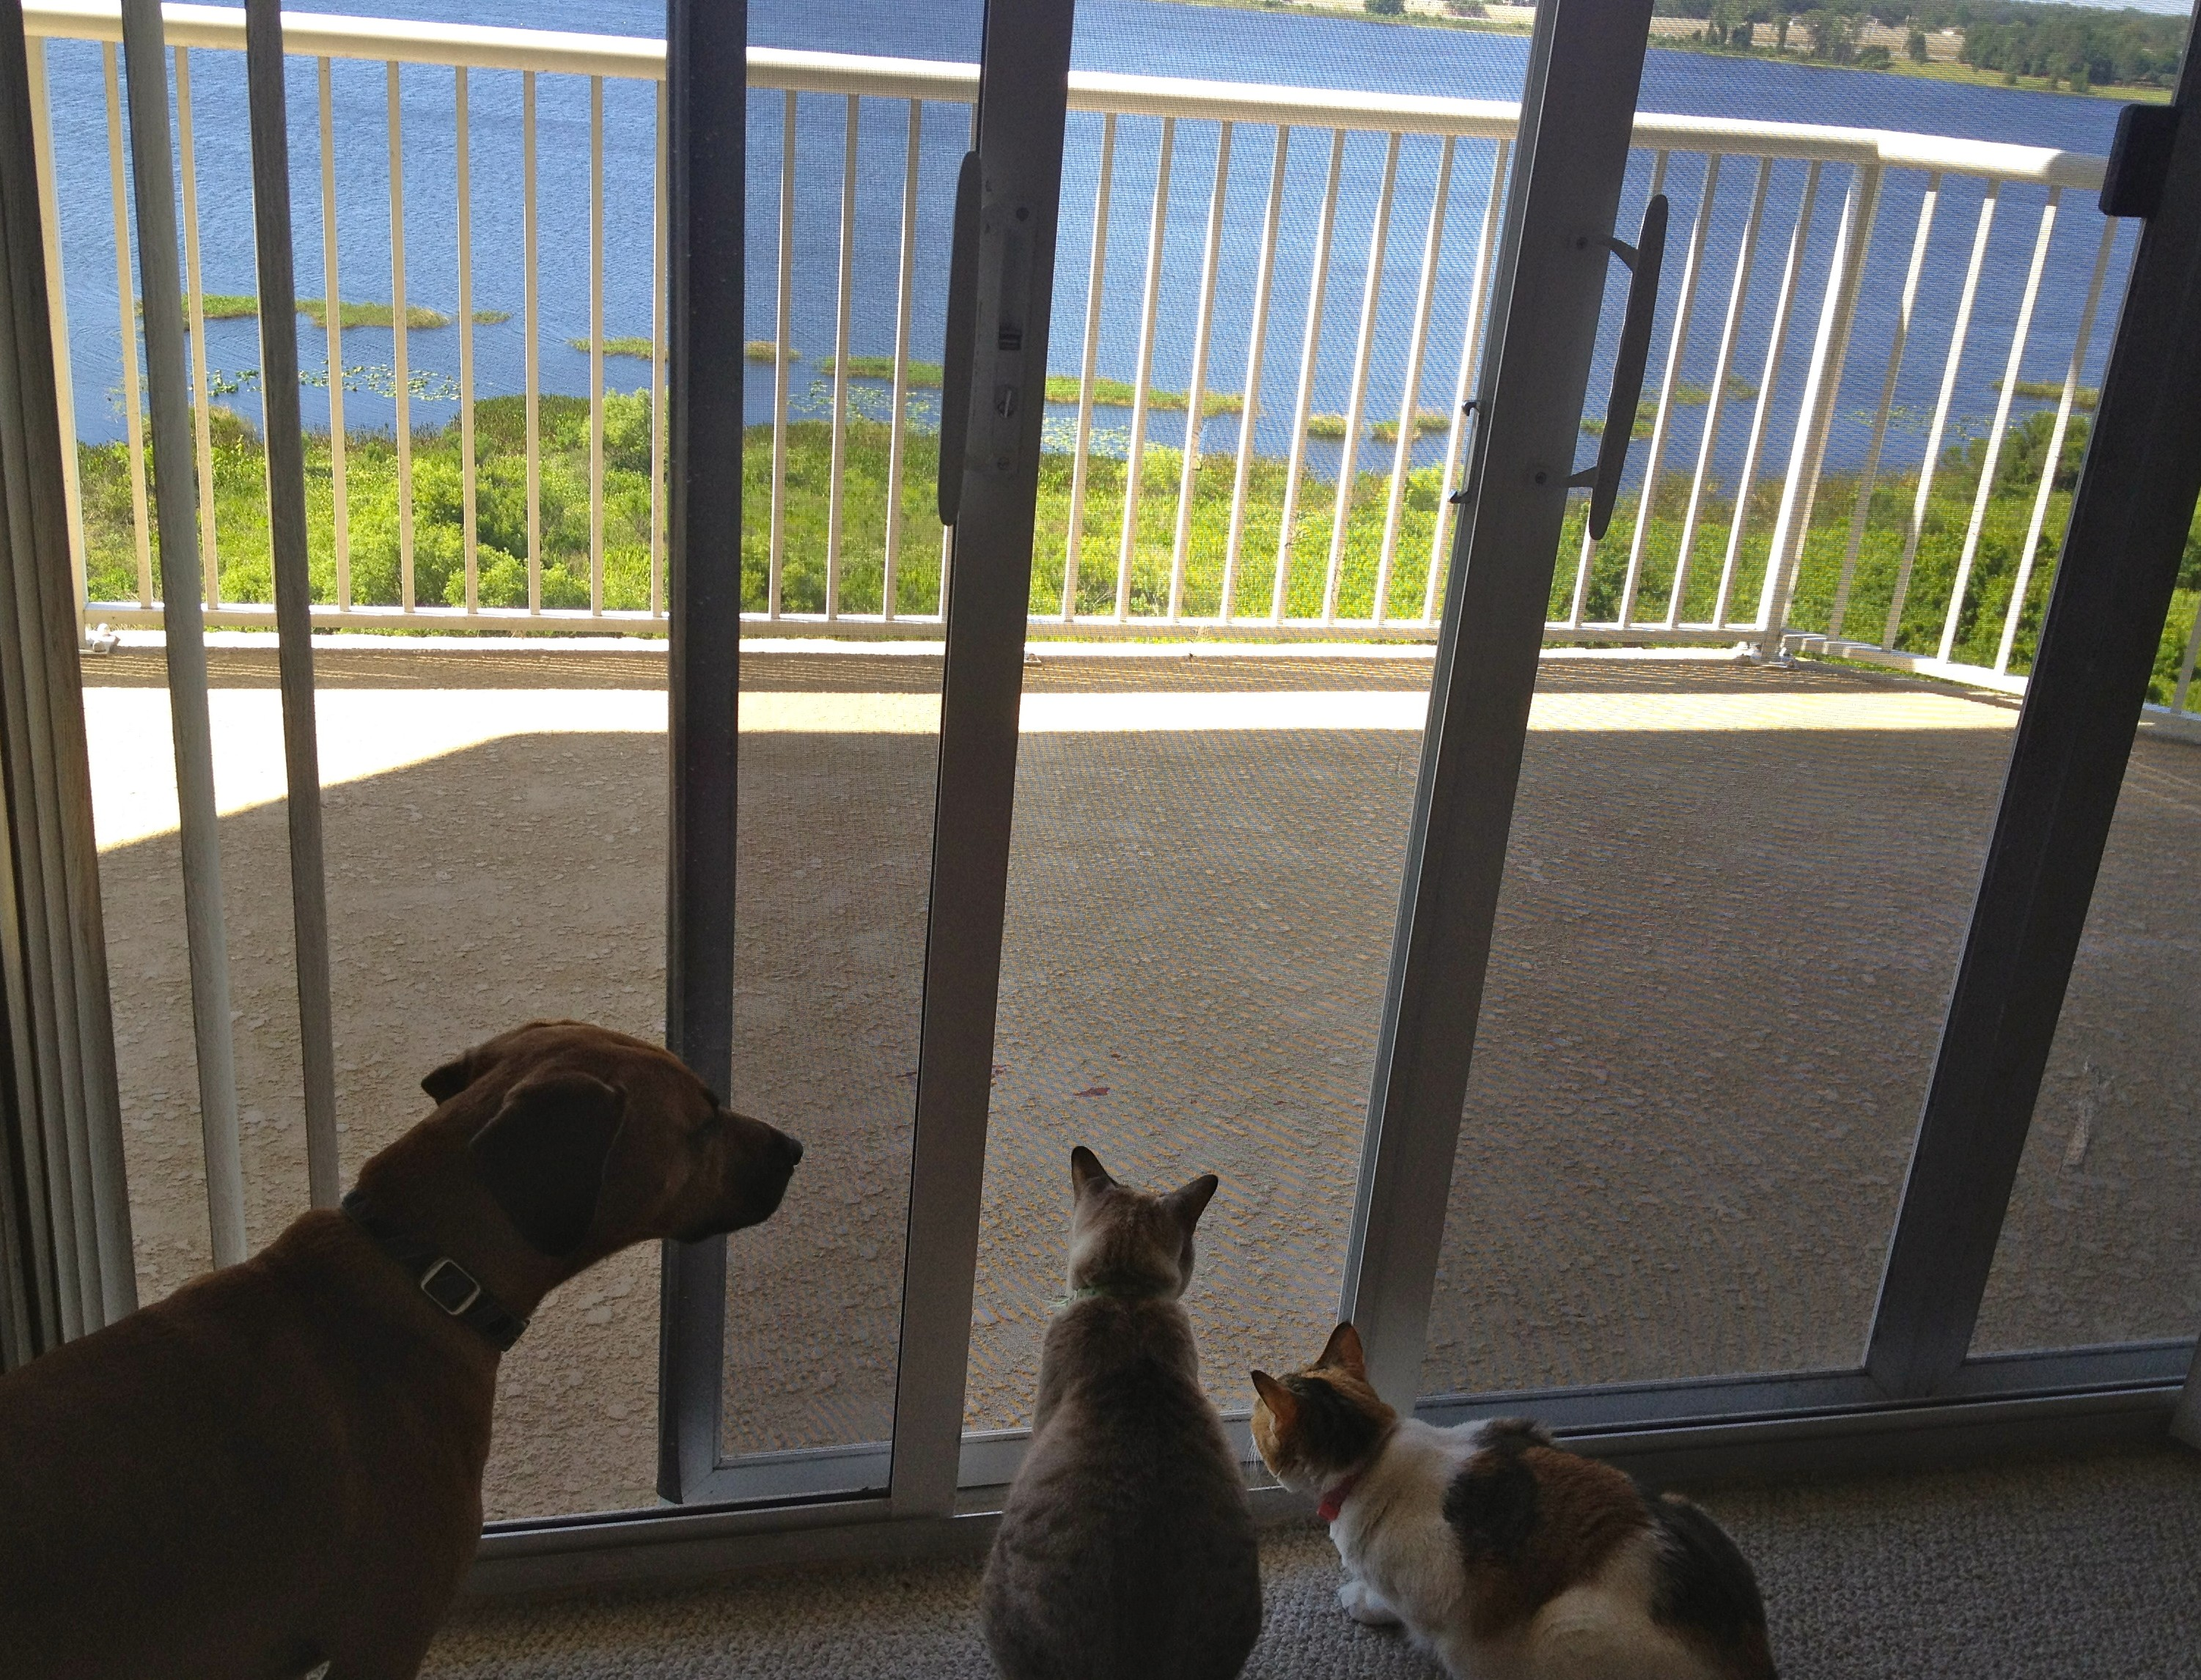 Pets looking out window